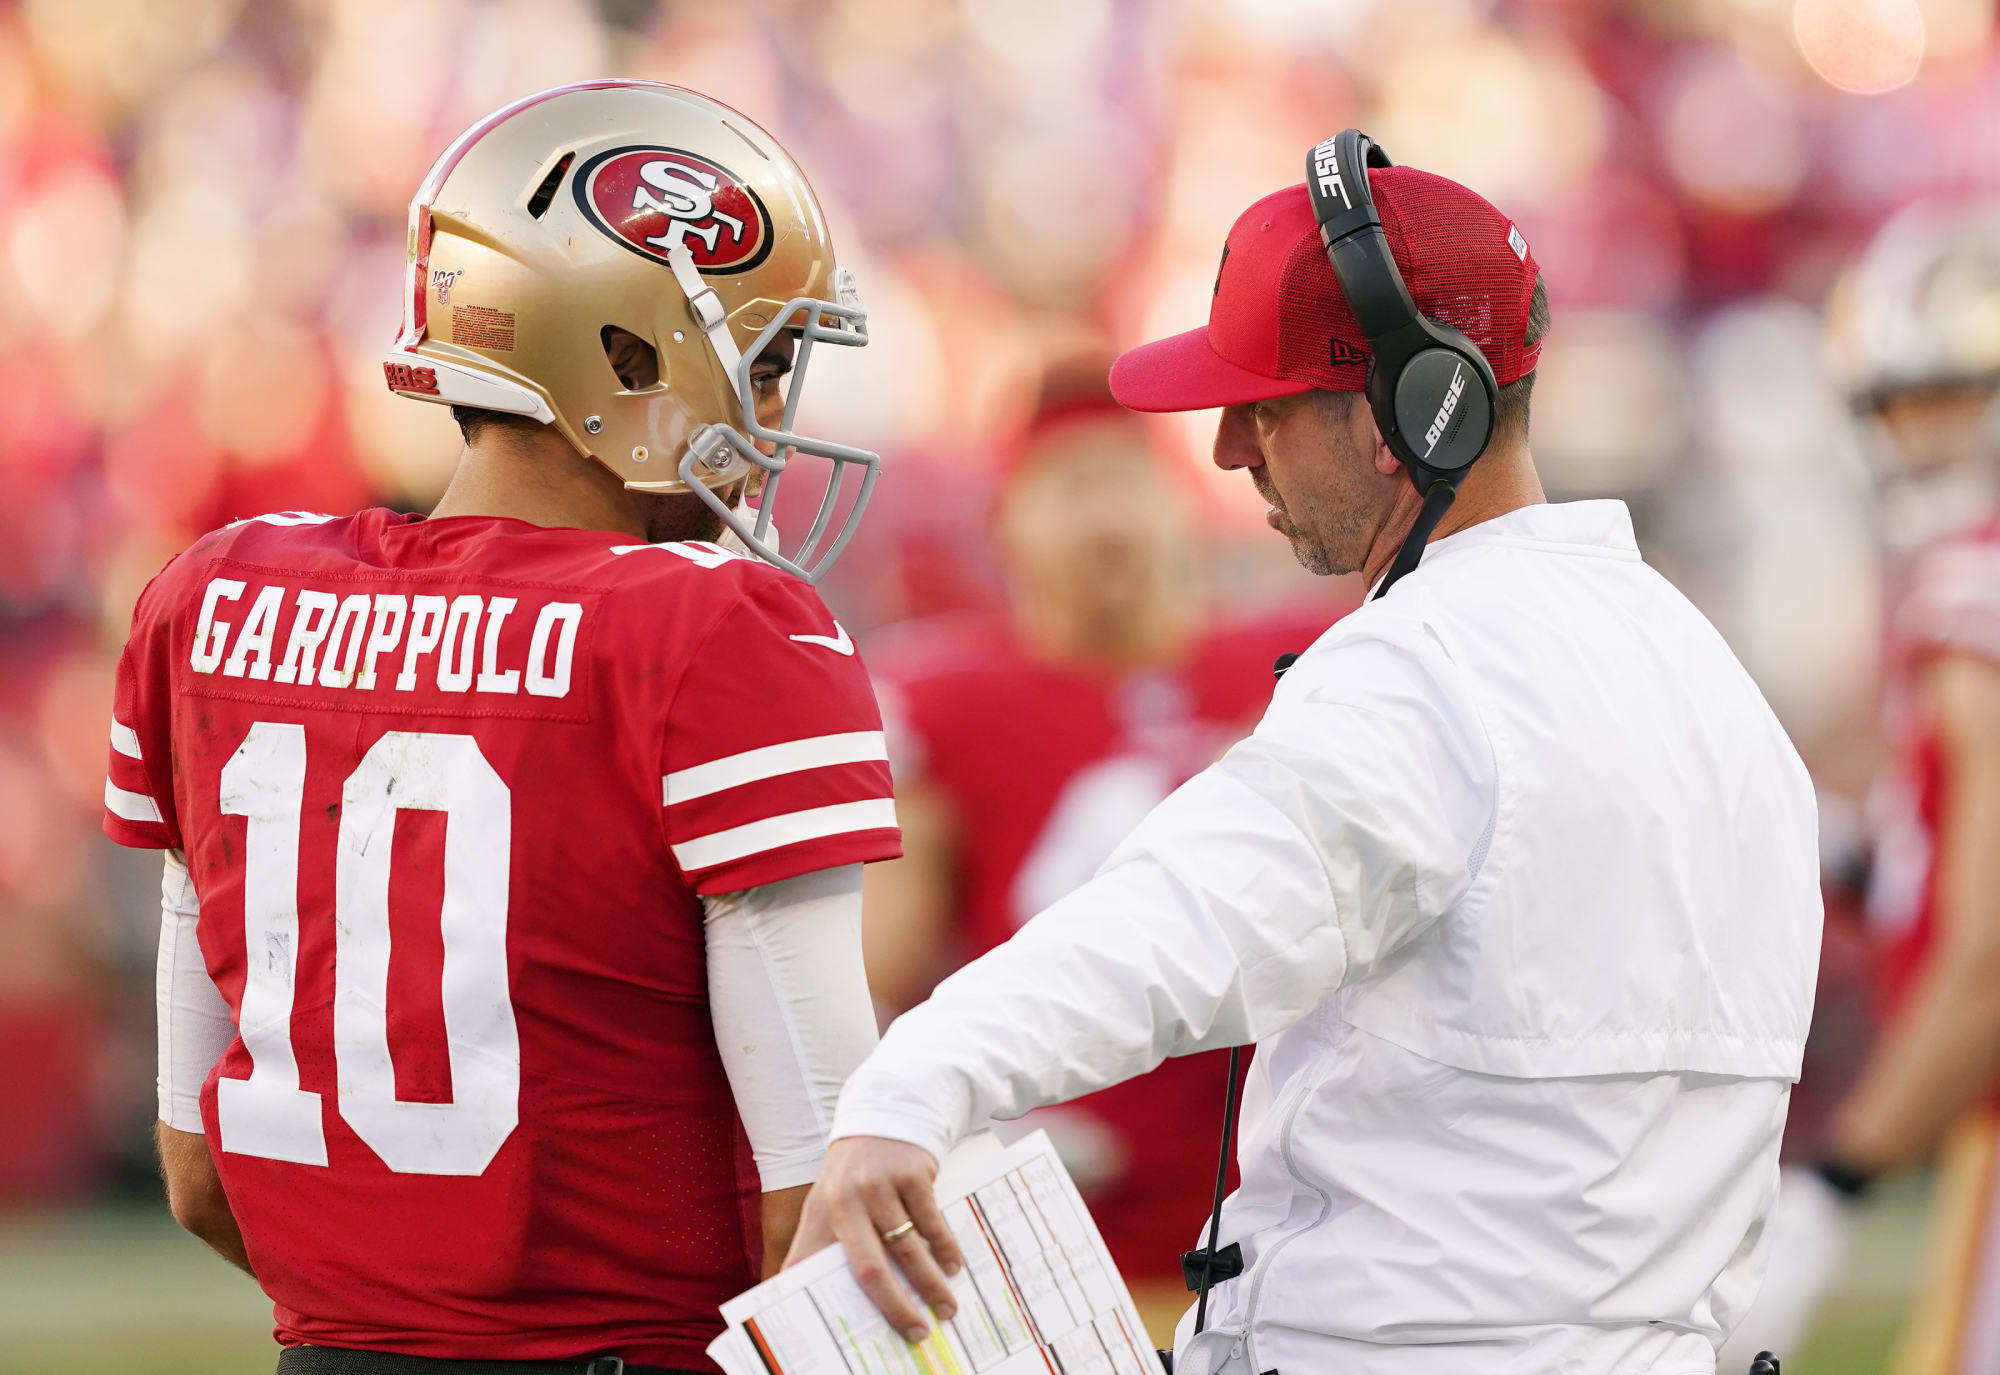 Photo of 5 reasons the 49ers will regress in 2020